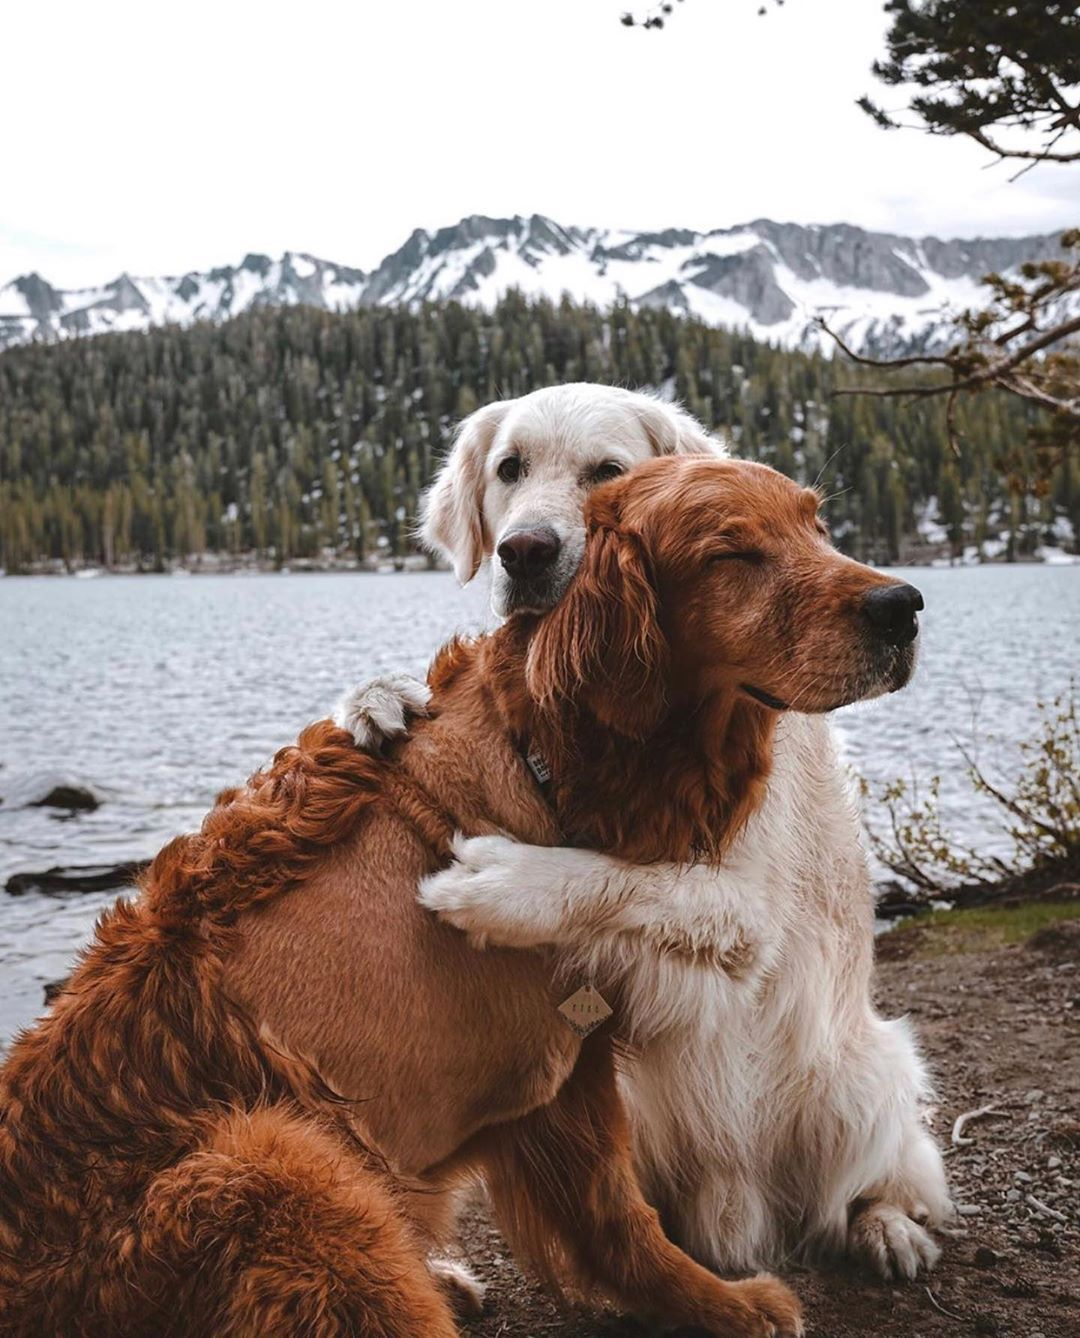 Photo B Cute Dogs And Puppies Puppies Dog Breeds